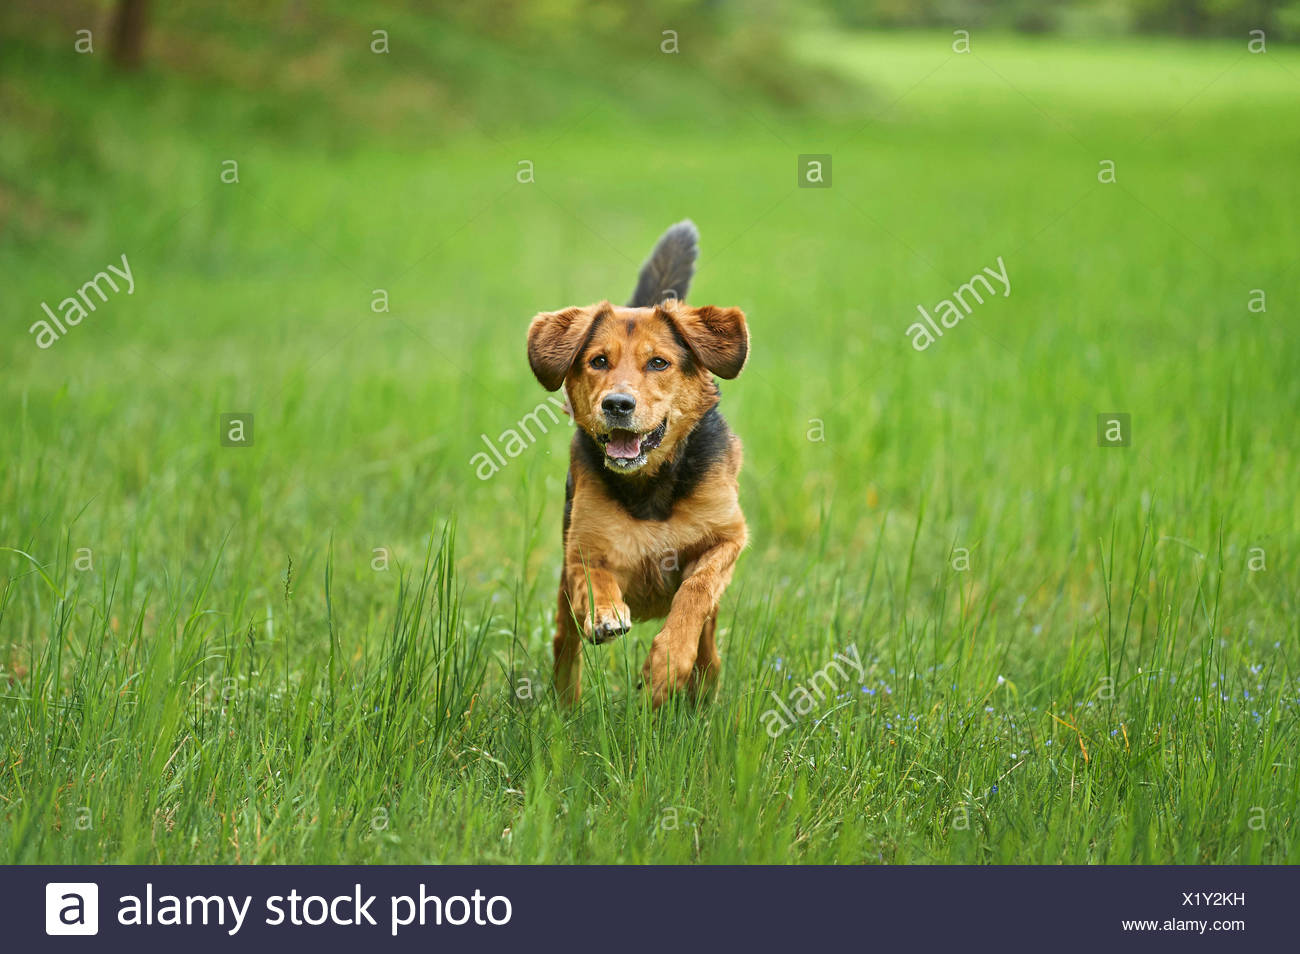 Dog (Canis lupus f. familiaris), mixed breed dog walking dans un pré, Allemagne Photo Stock